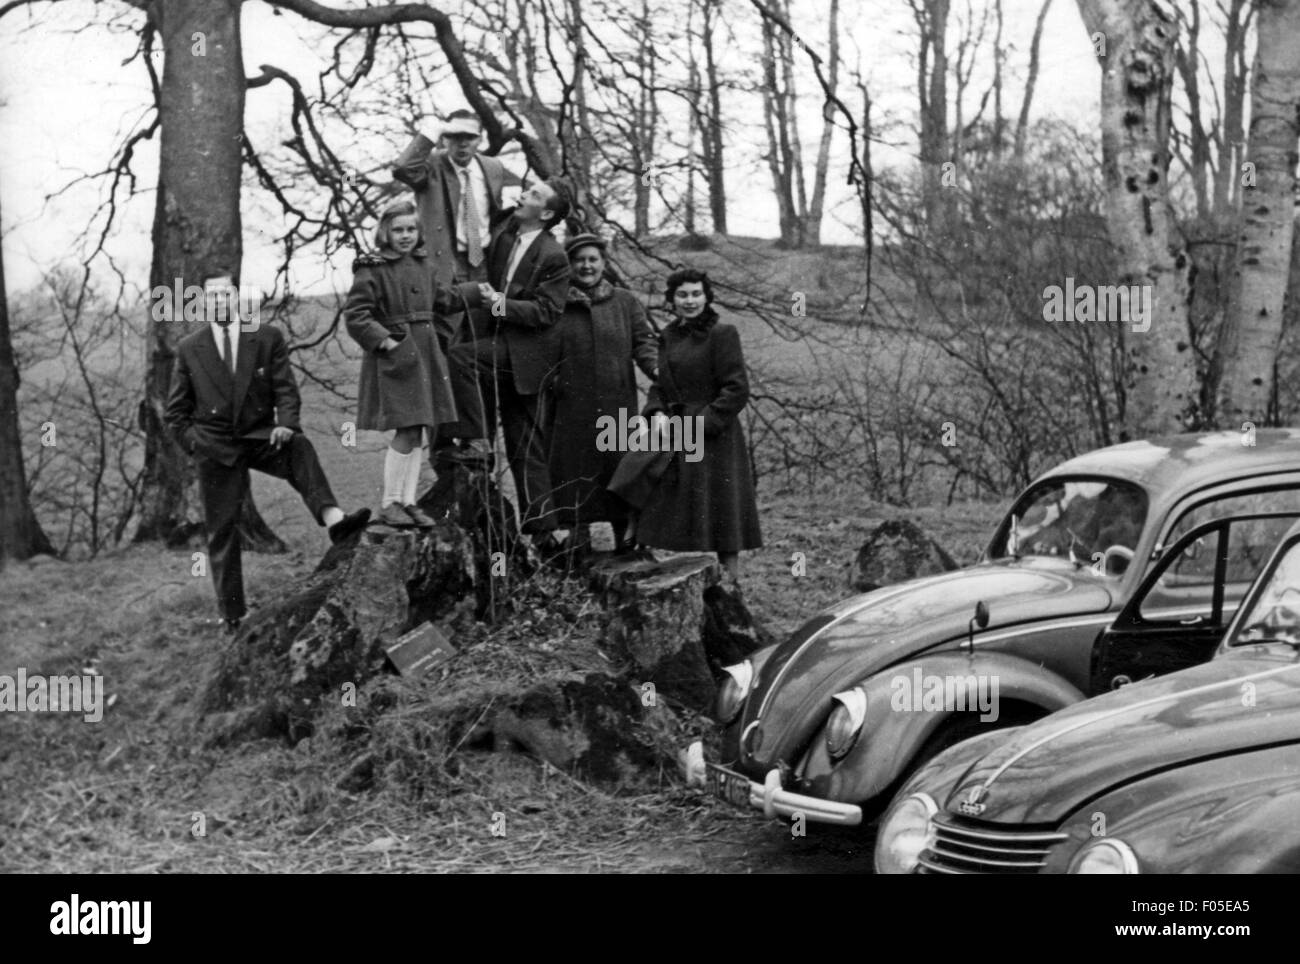 leisure, excursion, family having outing with VW Beetle type 1 and DKW F89, Germany, 1948 - 1956, 20th century, - Stock Image